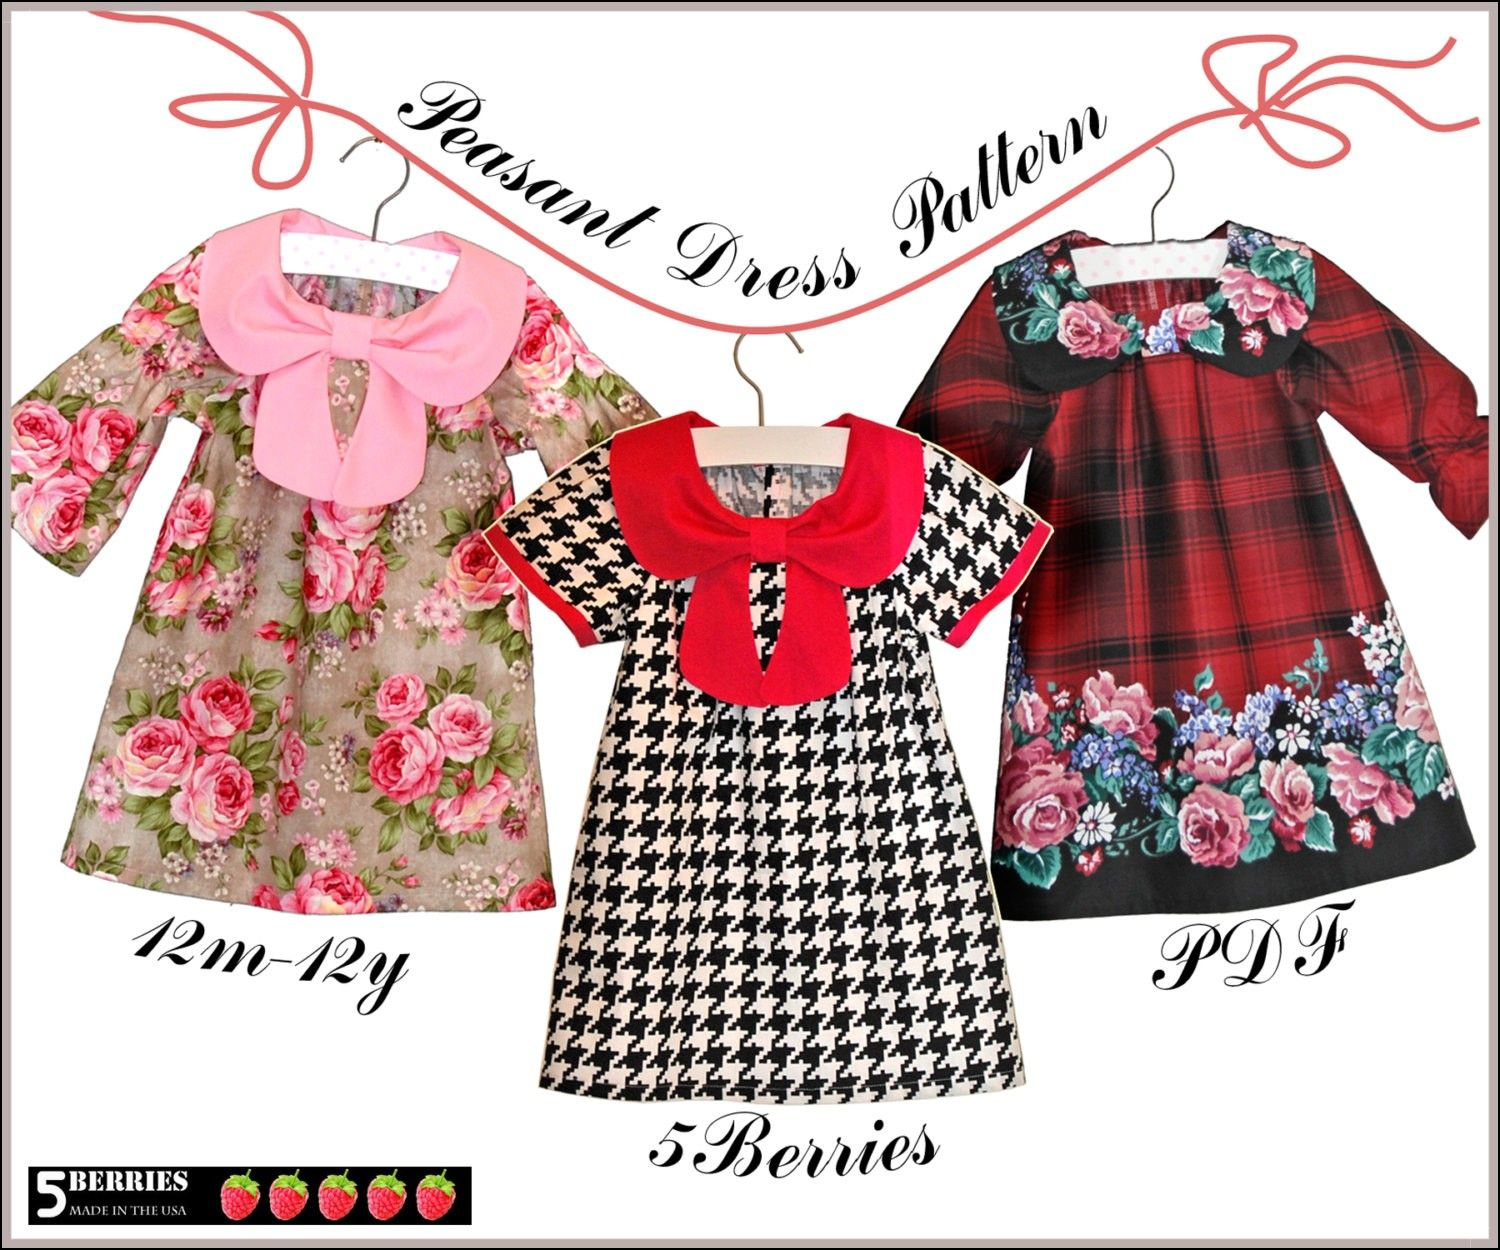 Little girl dress patterns pdf dresses and gowns ideas little girl dress patterns pdf jeuxipadfo Image collections